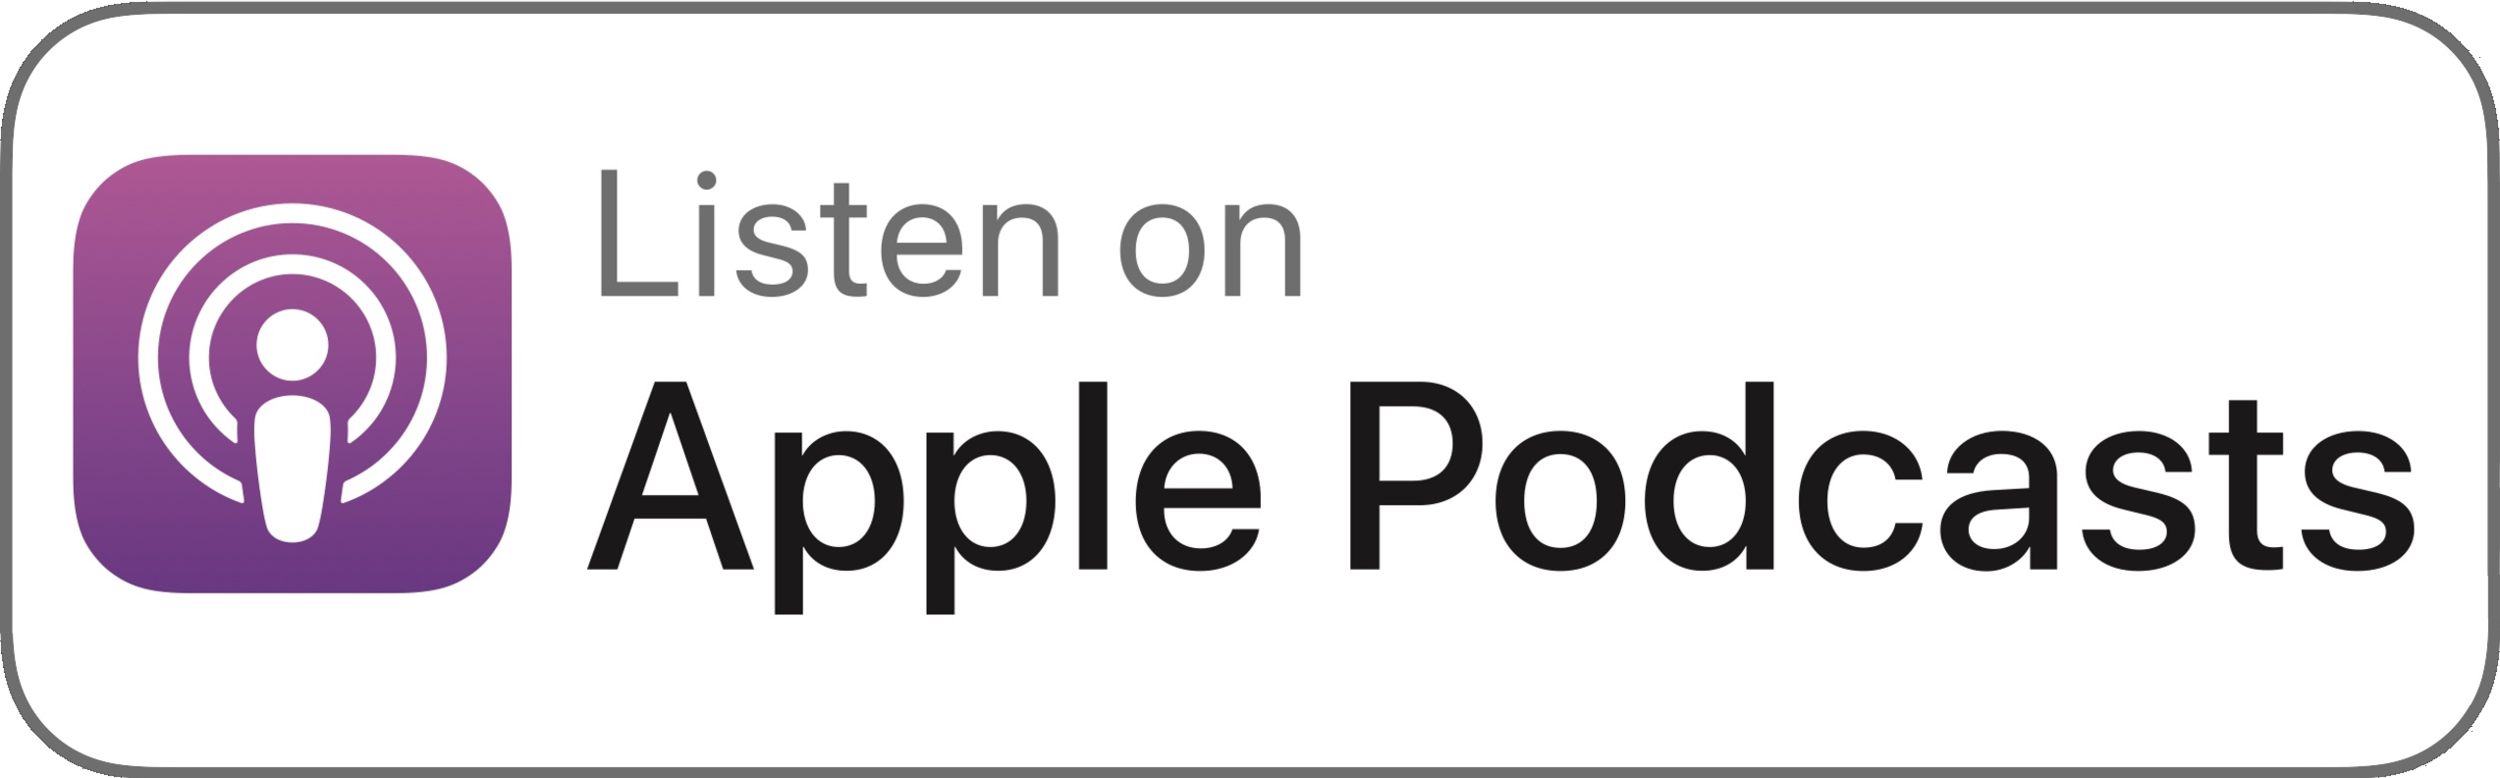 apple-podcasts-button.png